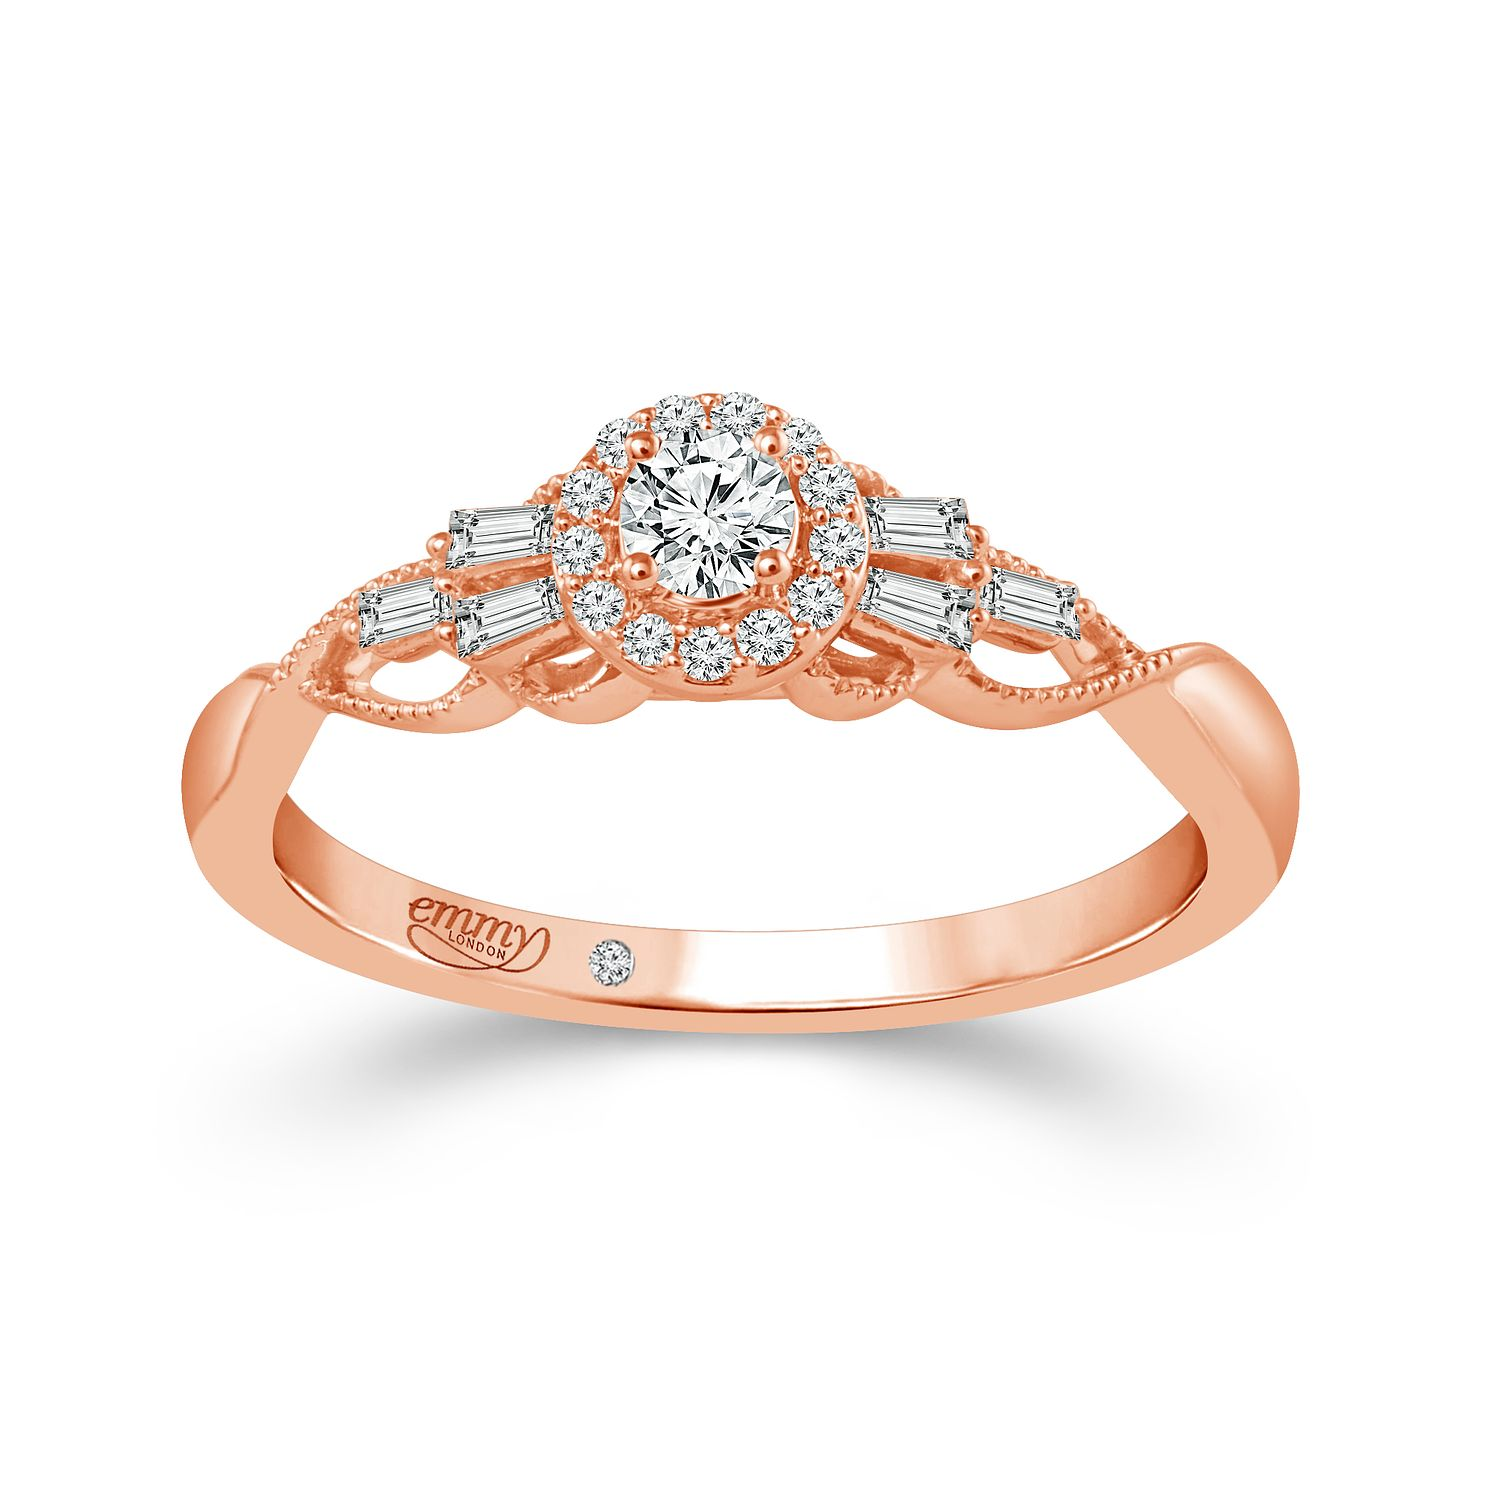 Emmy London 18ct Rose Gold 1/4ct Diamond Mix Cut Ring - Product number 4574168